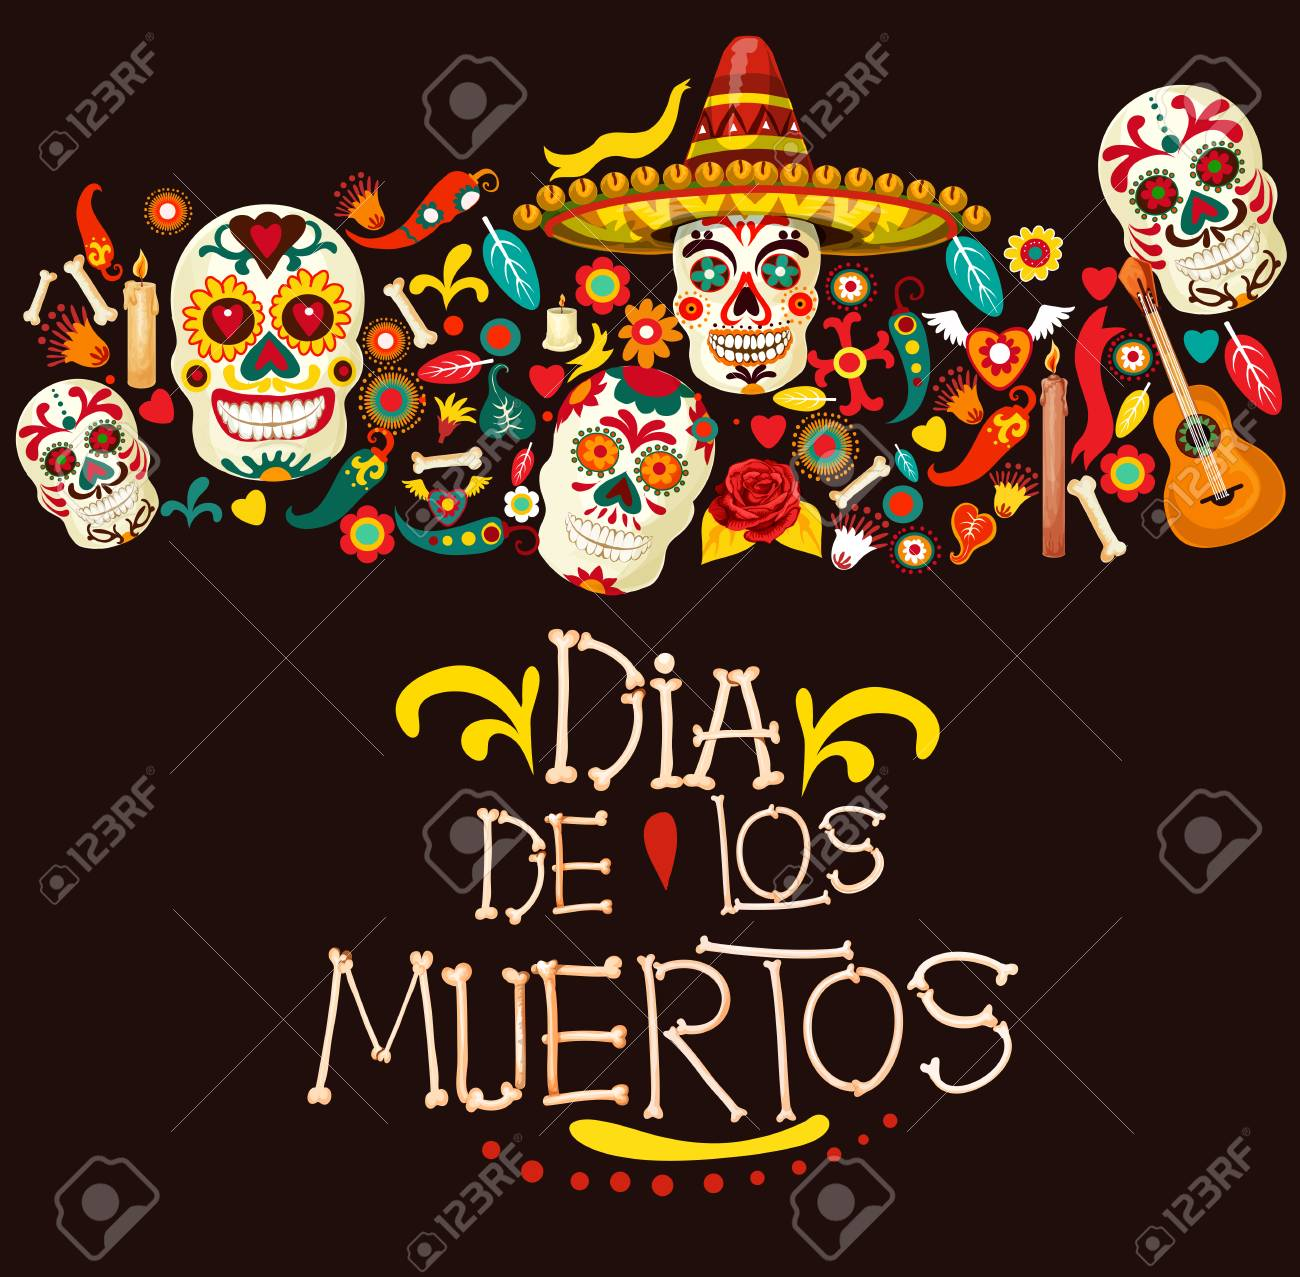 Dia de los Muertos greeting card for Mexican traditional holiday or Day of Dead celebration. Vector cartoon skeleton skulls in sombrero with Mexico ornaments, banjo guitar and candles - 110440423